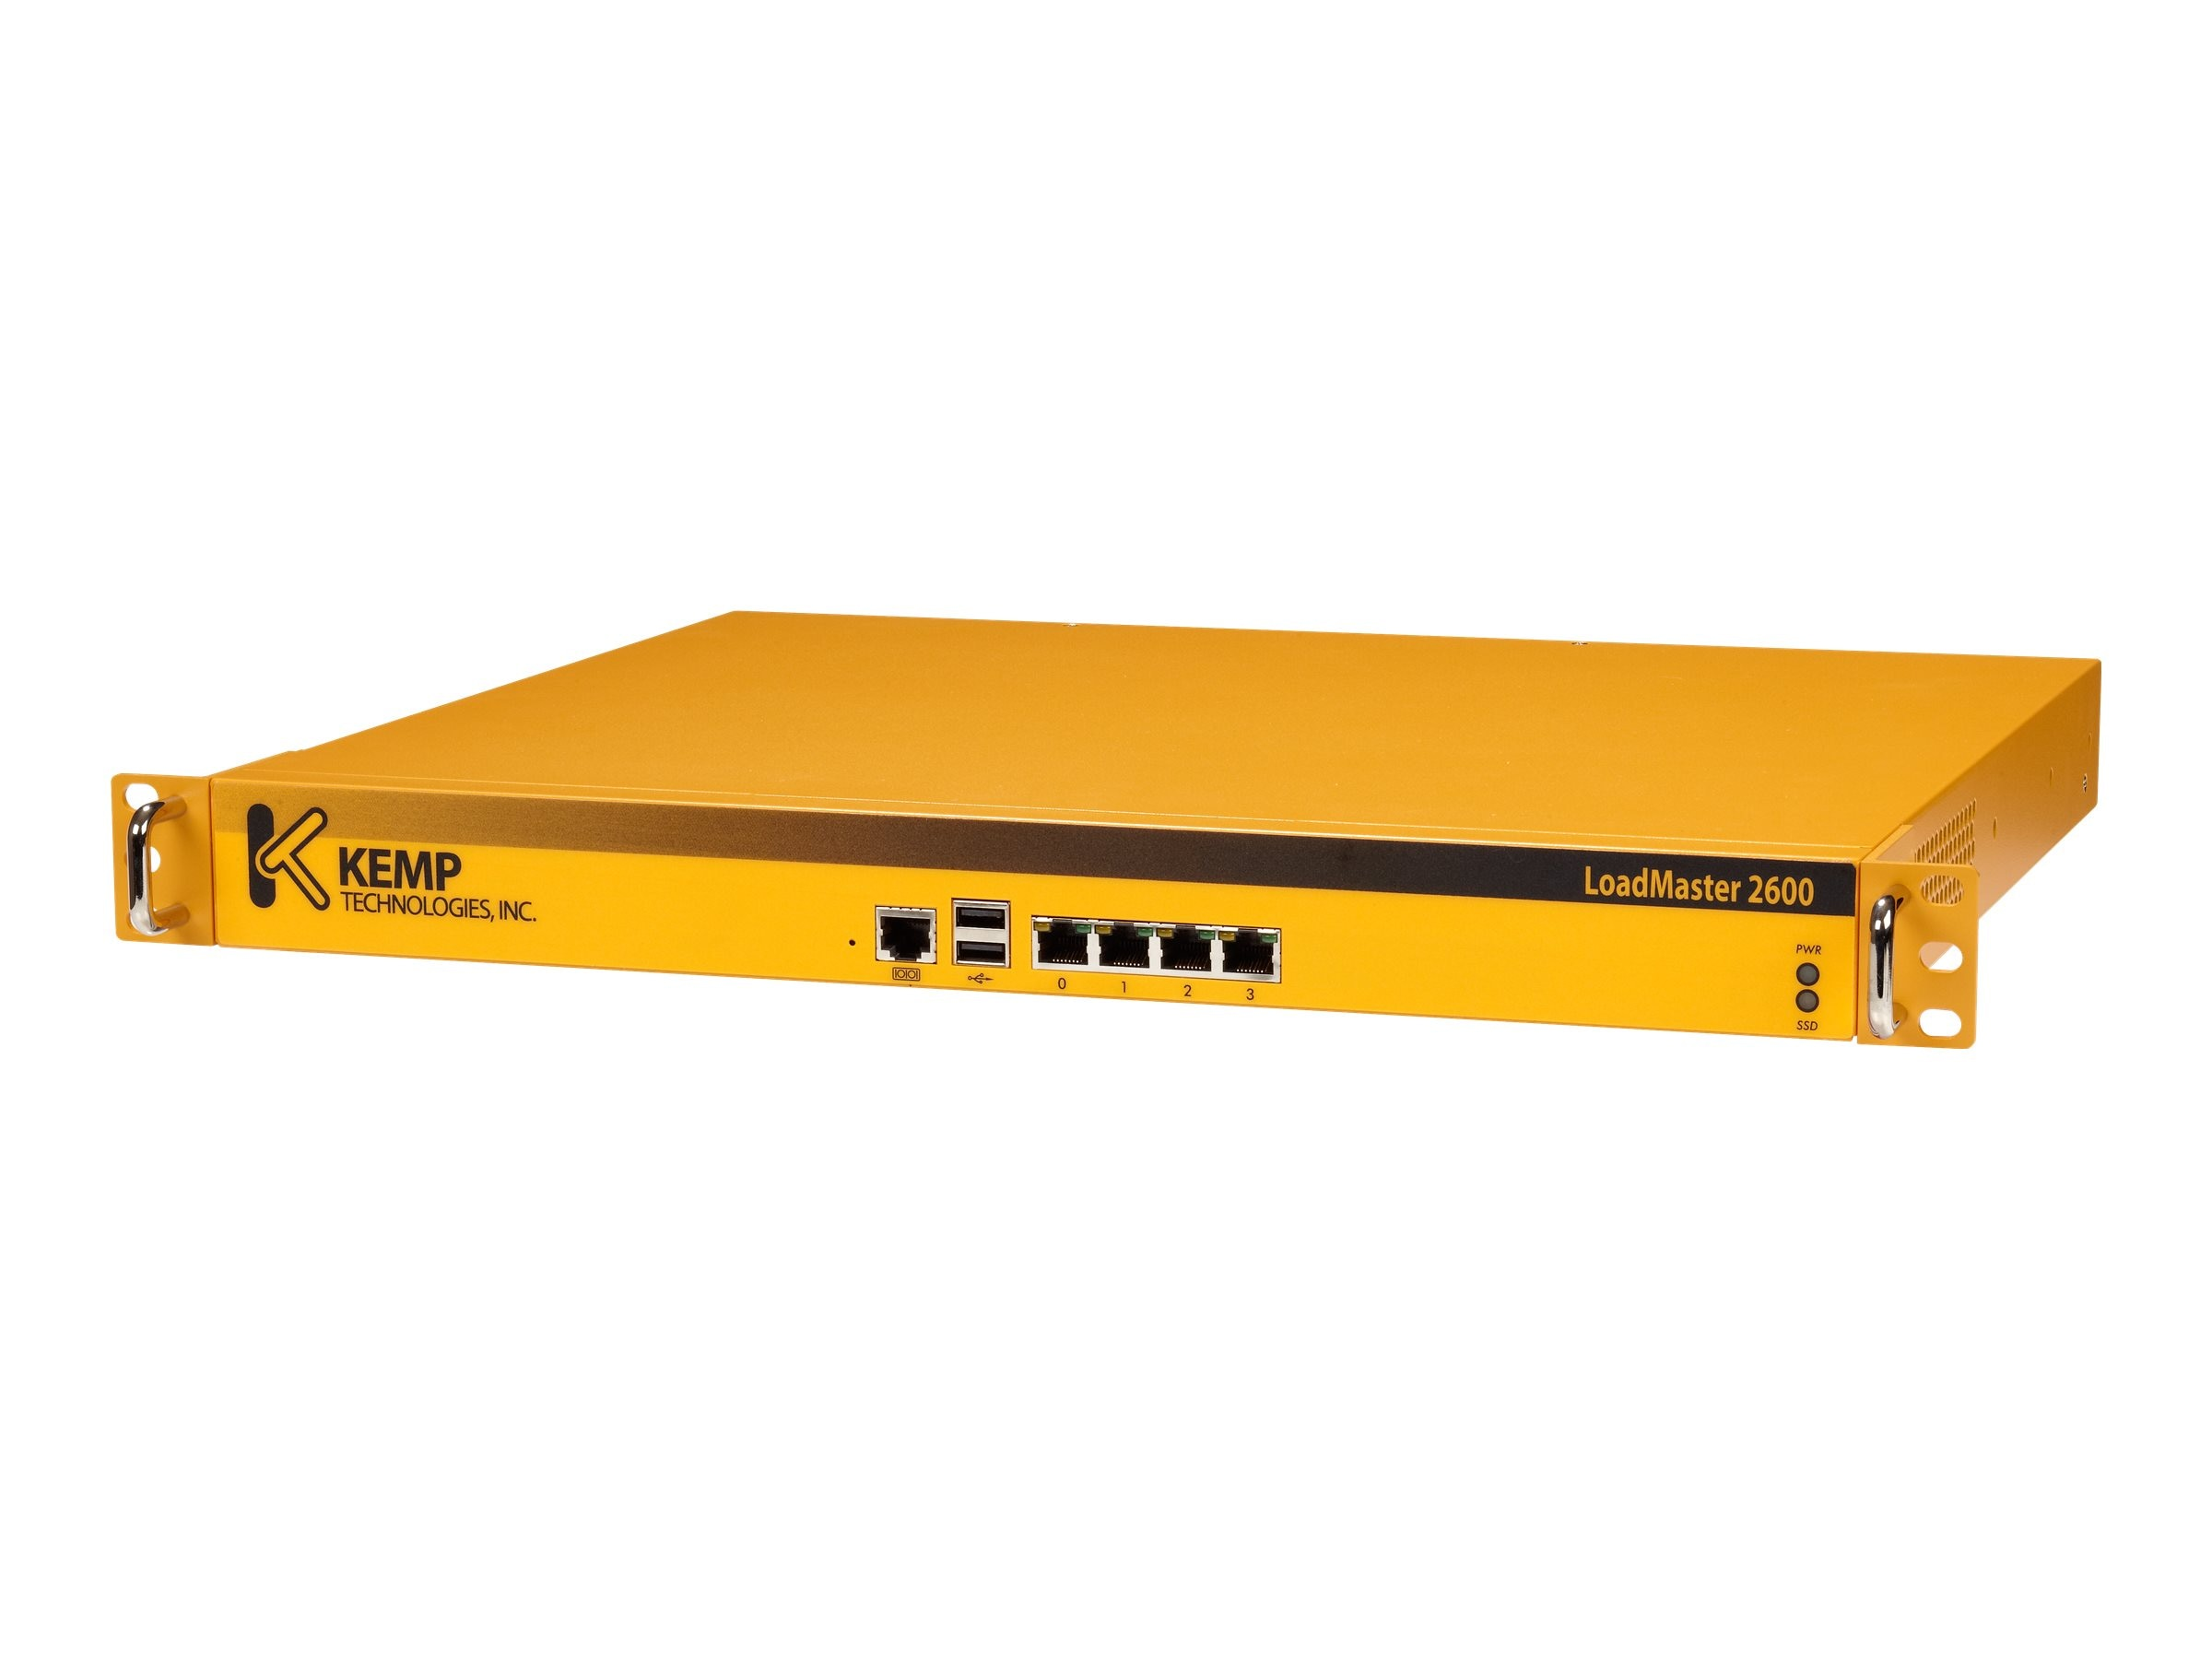 KEMP Loadmaster Load Balancer LM2600 Unit 3Yr Premium Support 24X7  Trade In, LM3-2600-P-TIP